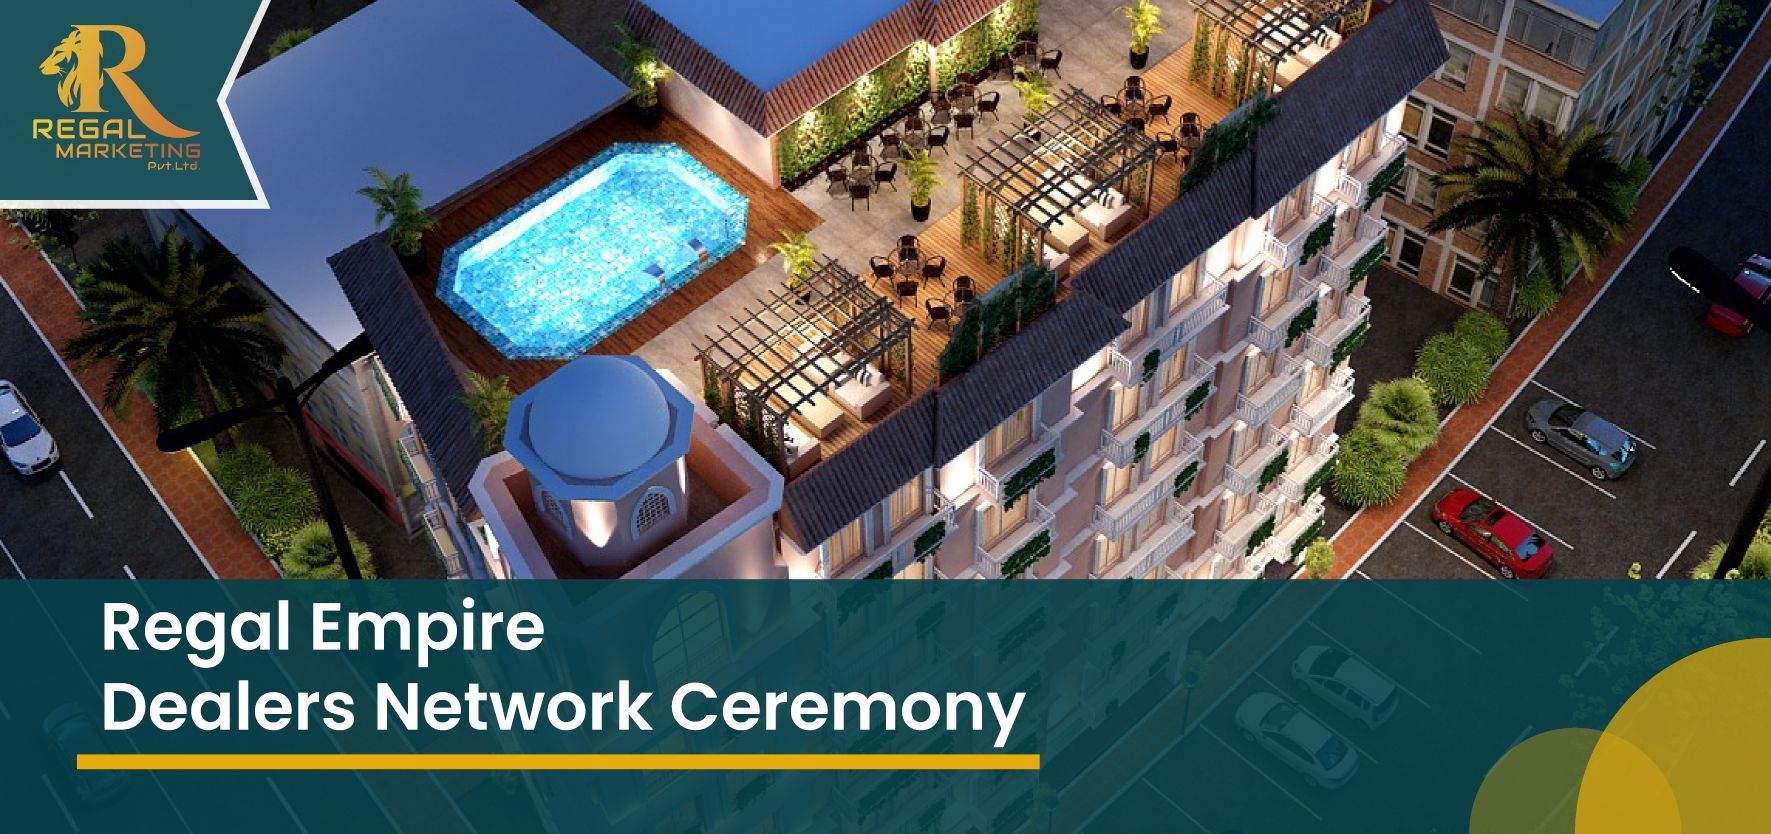 Regal Empire Dealers Network Ceremony-01